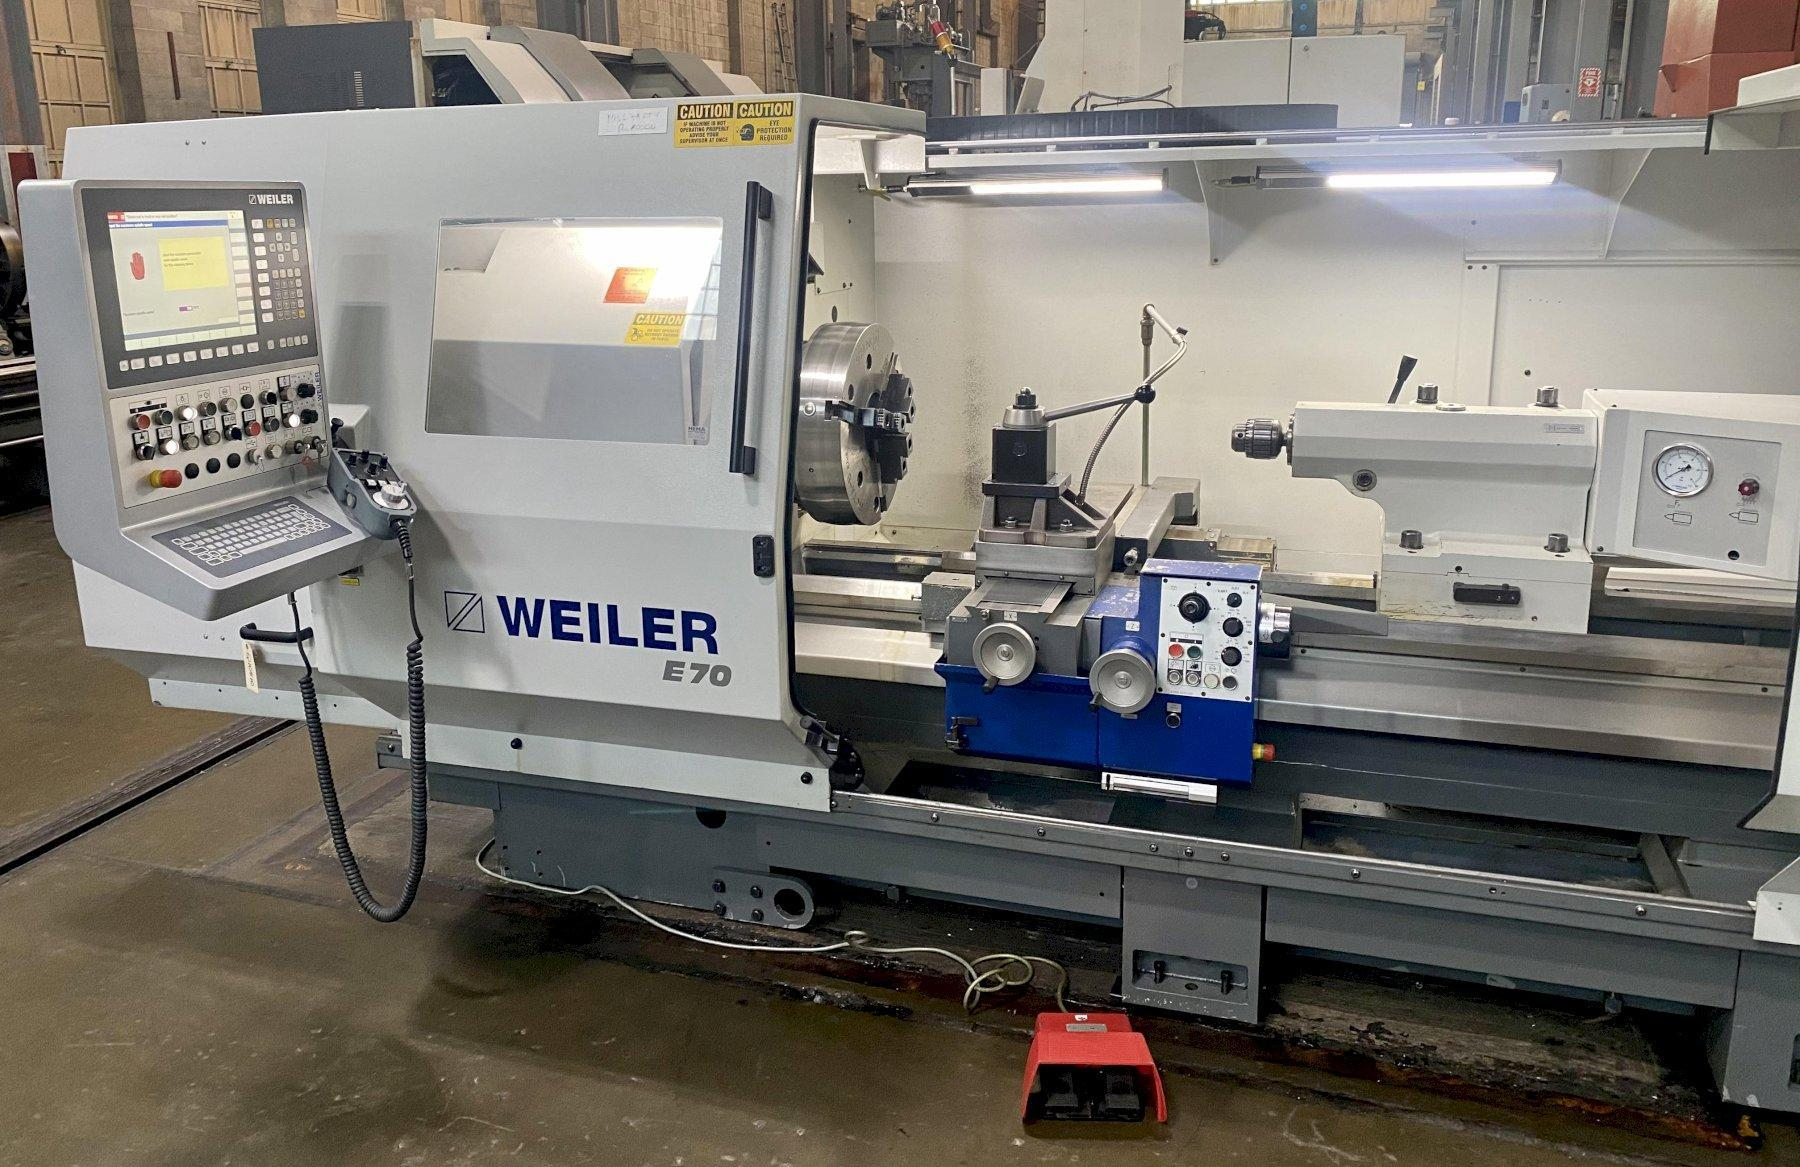 """WEILER E70 x 2000 CNC FLAT BED LATHE, Siemens 840D CNC Control  20"""" 3-Jaw Chuck, 6"""" Spindle Bore, 28"""" Max Swing, 80"""" Between Centers, Hydraulic Quill, Aloris Tool Post, 48 HP  Motor, New 2015."""